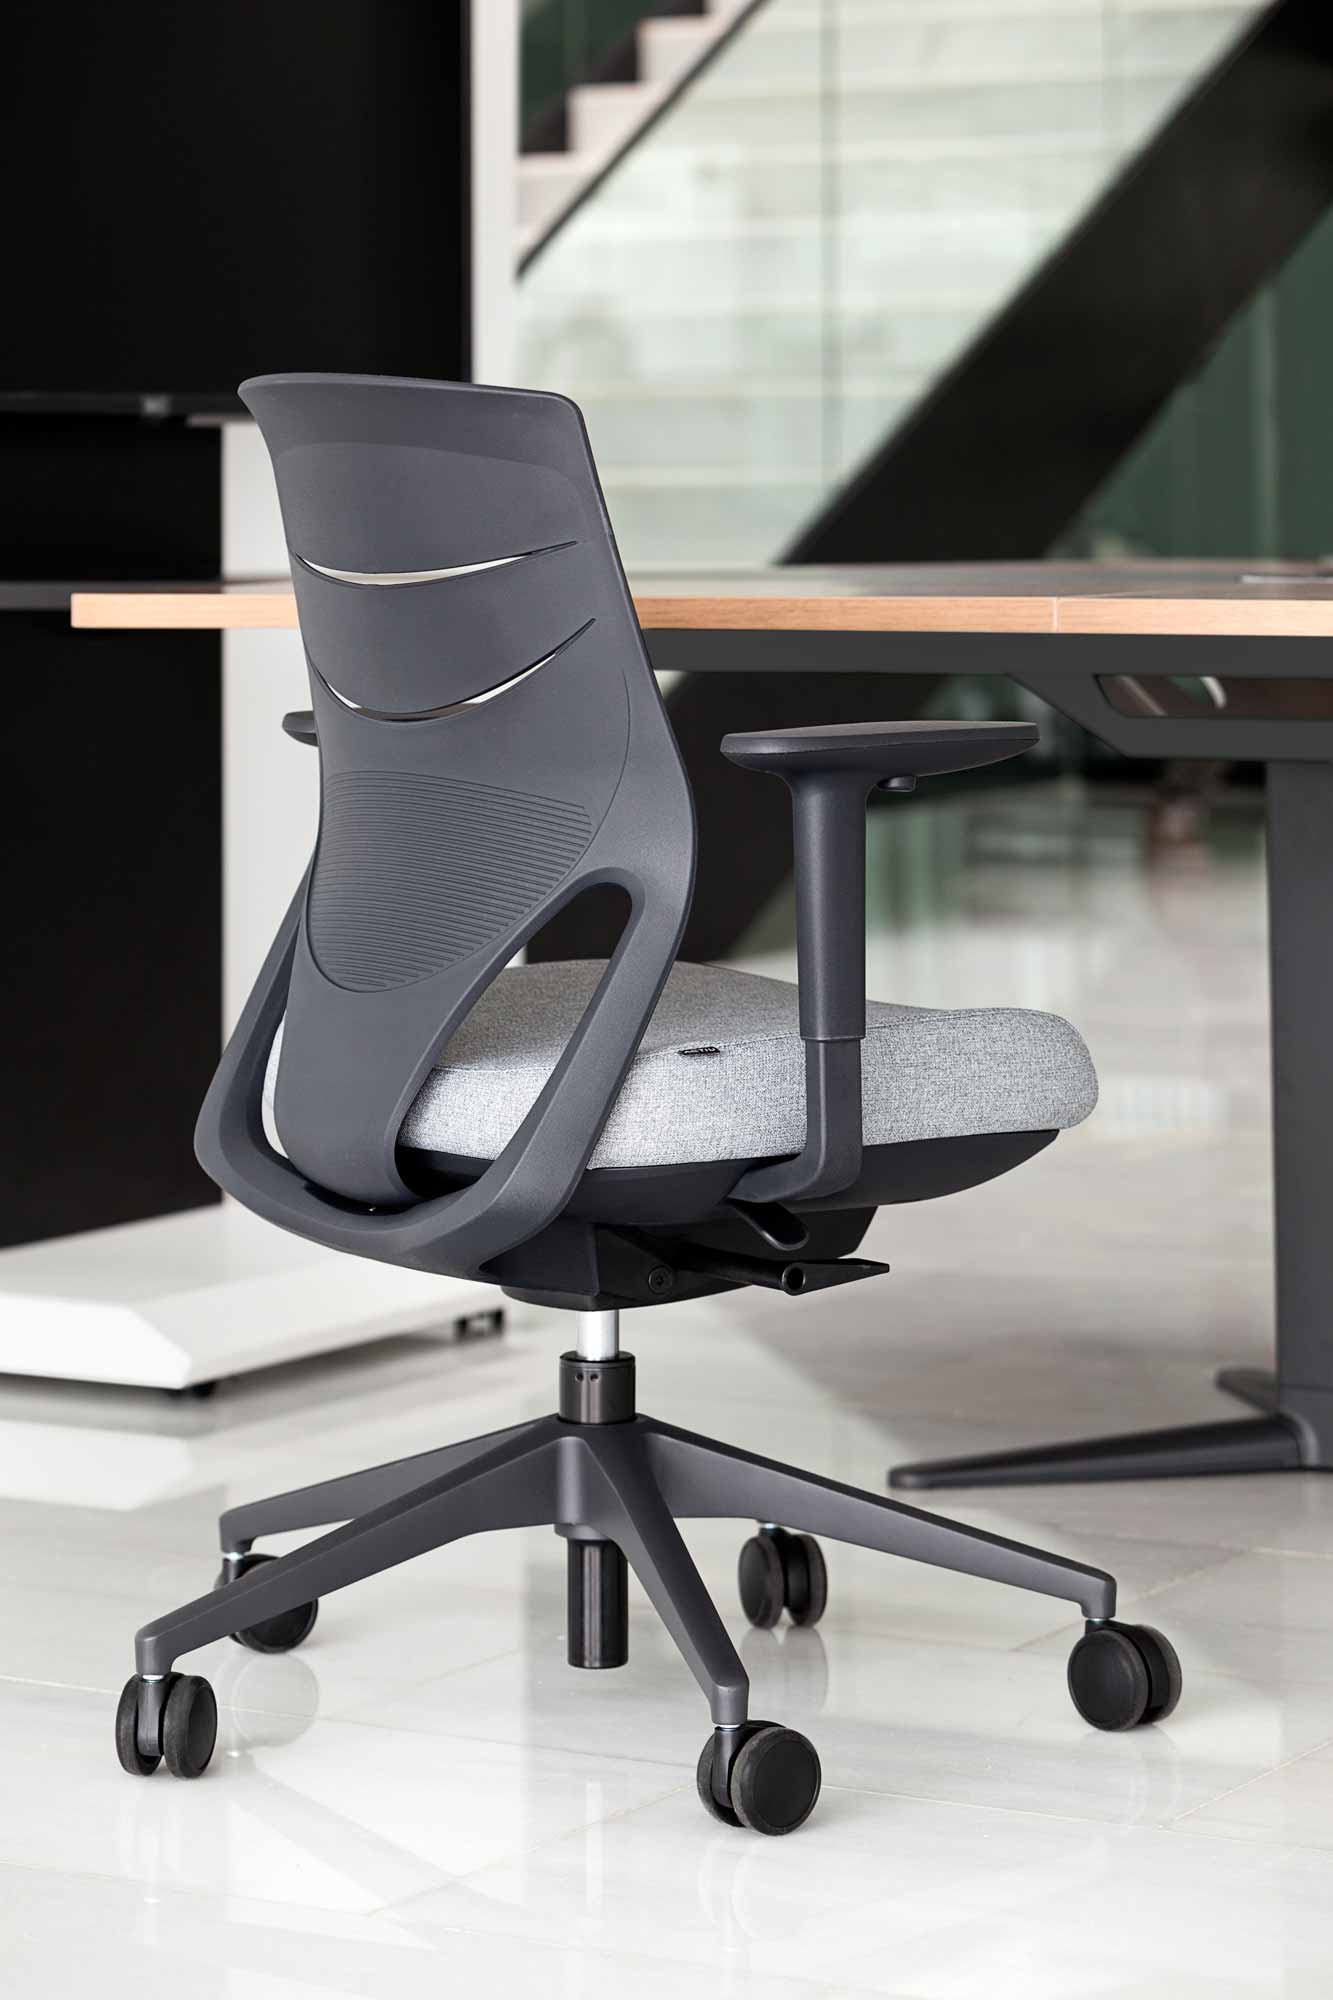 desk power operative executive tables conference efit chair black grey wheldeed mobility design height office adjustable synchrony combination workplace executive masof actiu